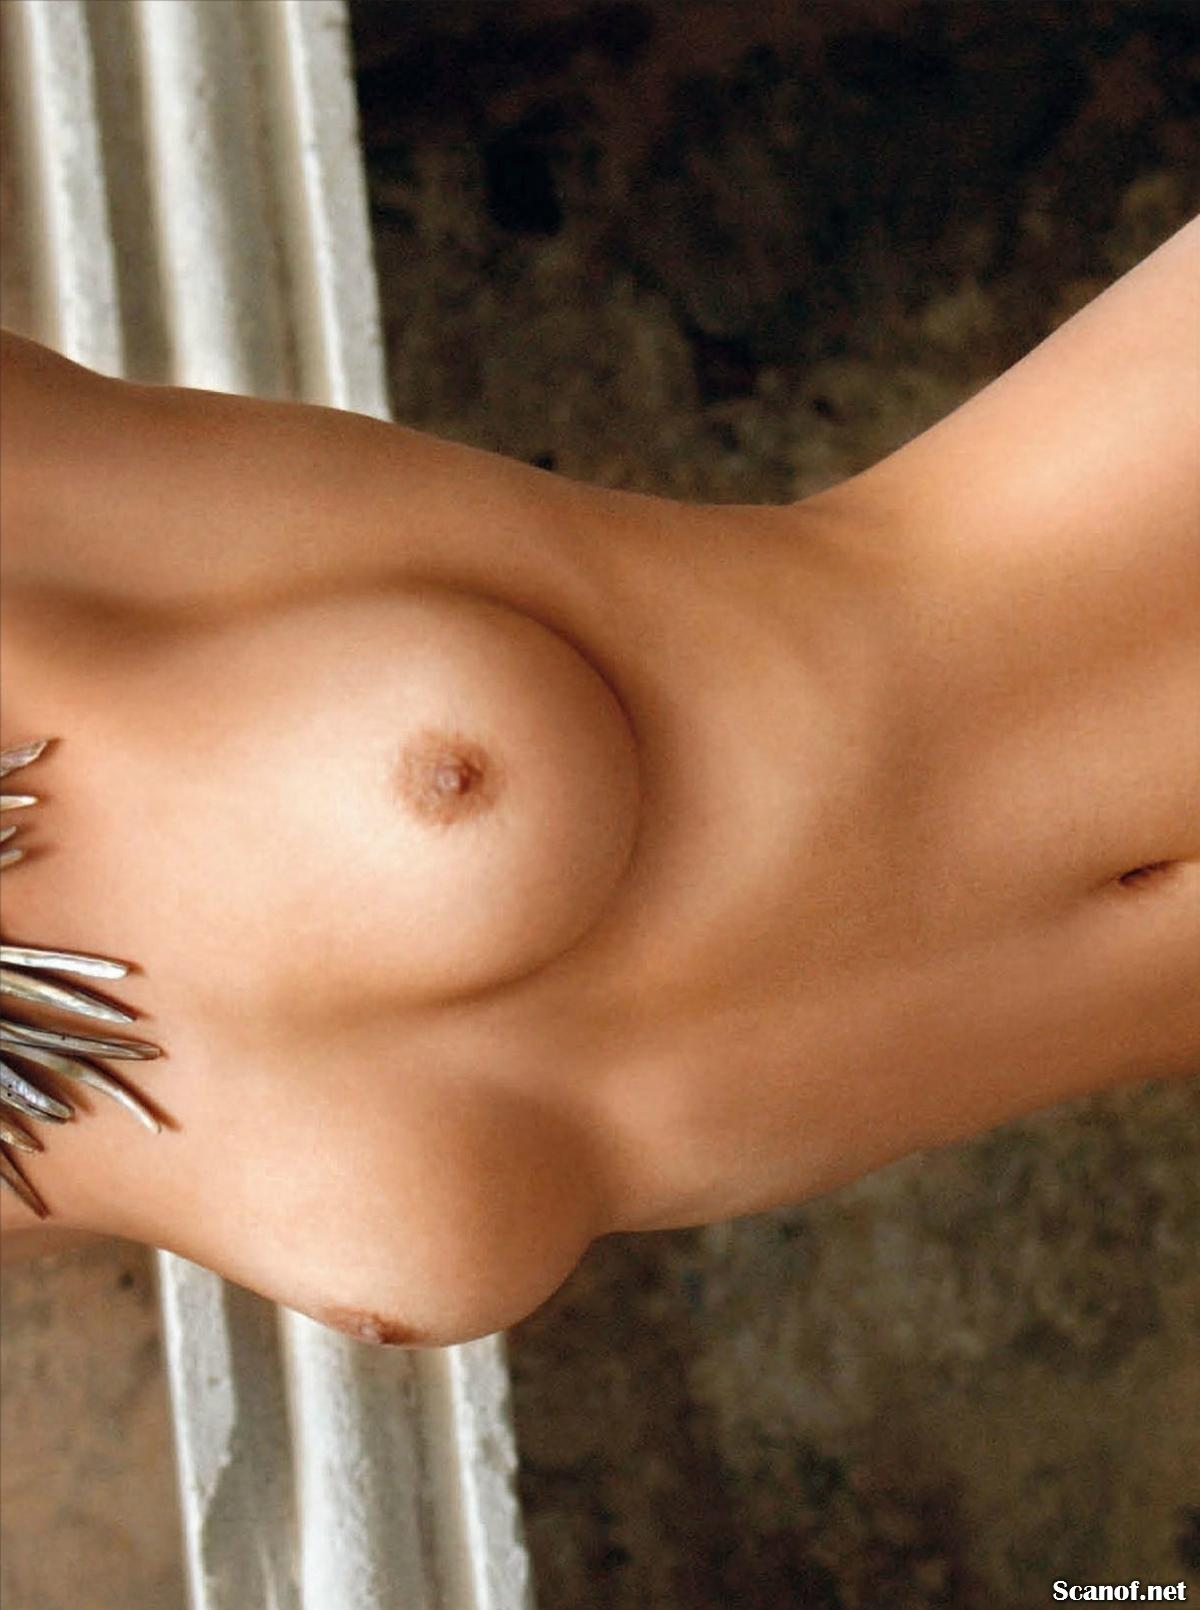 437597816_Playboy_2013_08_Czech_Scanof.net_068_123_91lo.jpg